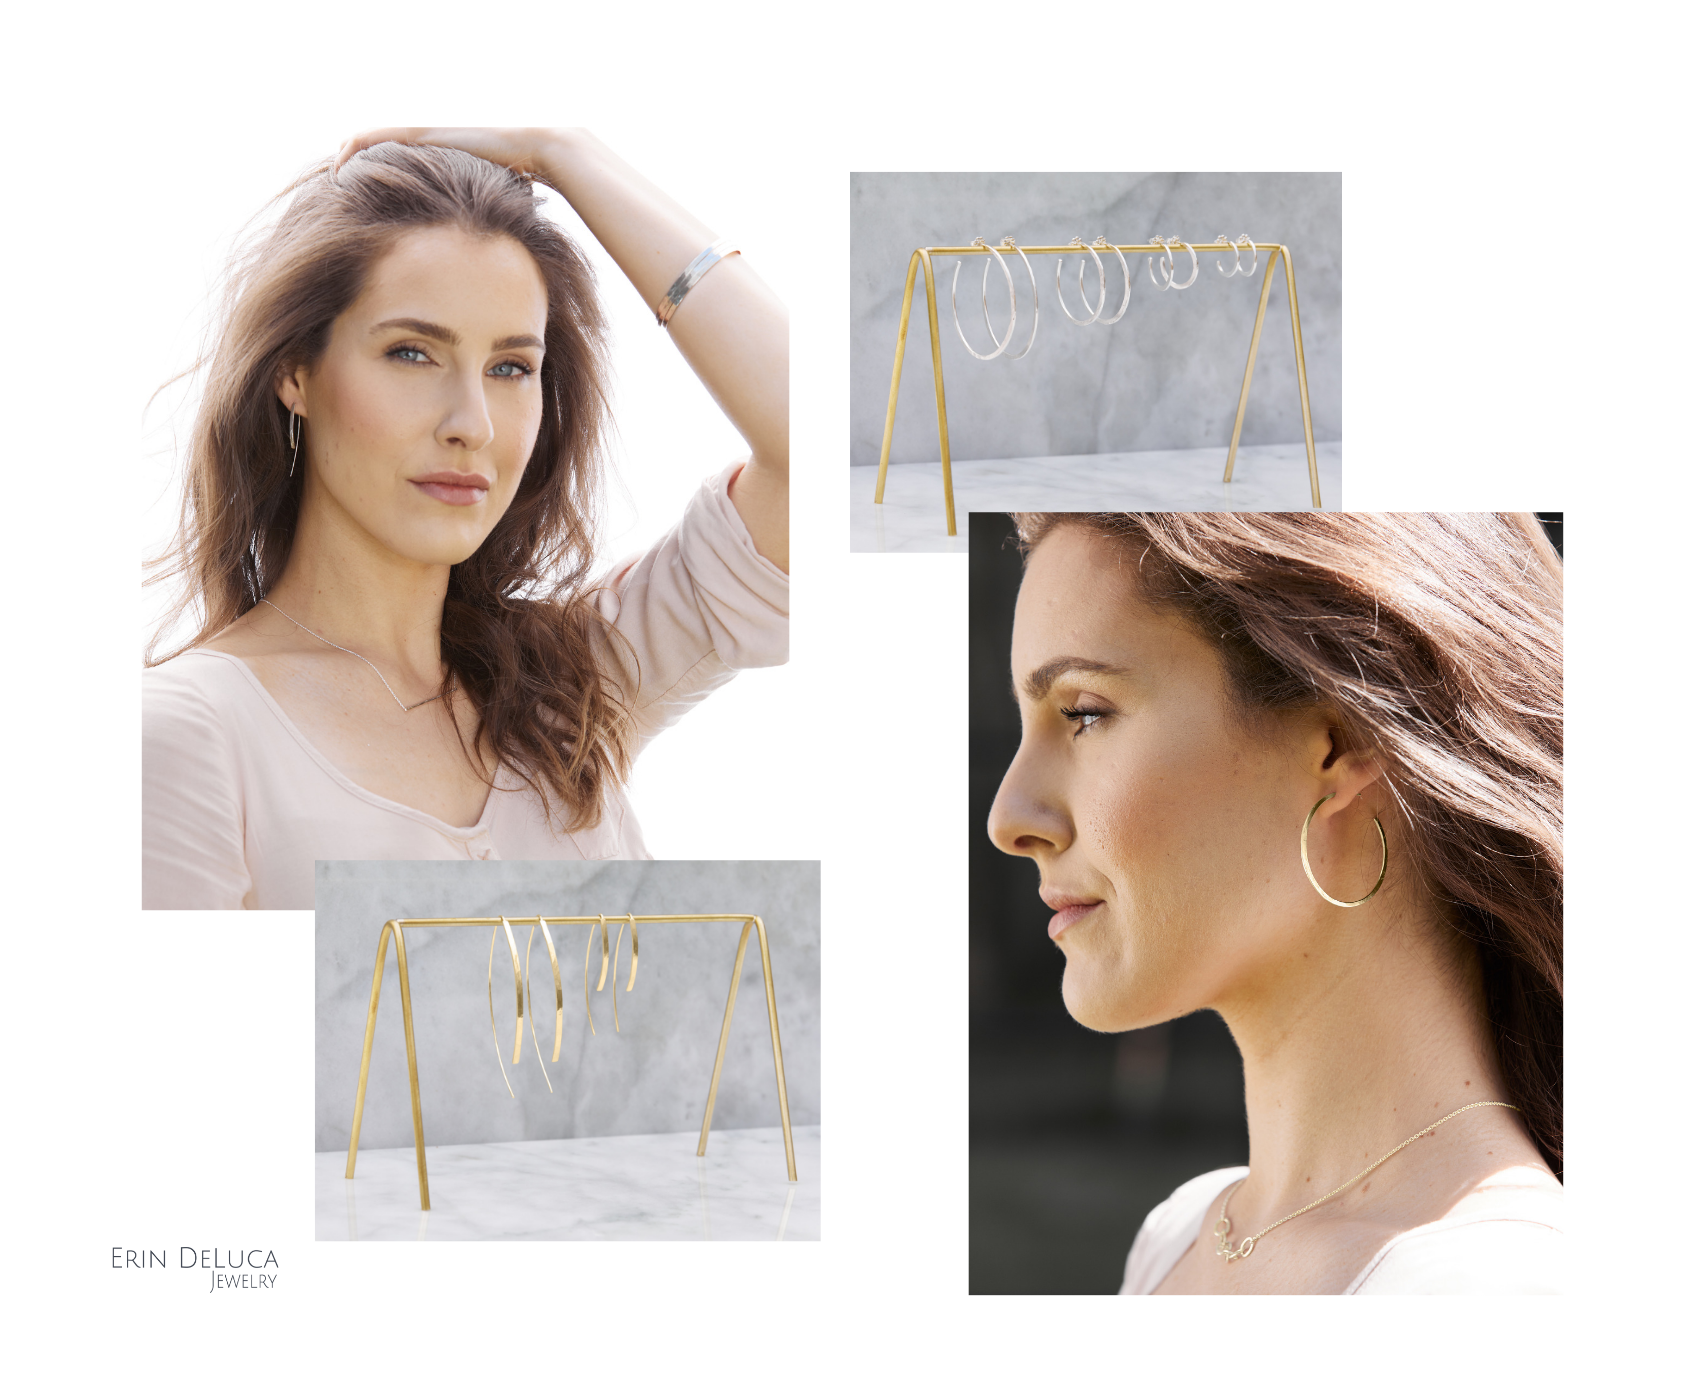 Erin DeLuca Jewelry Lookbook 6.png